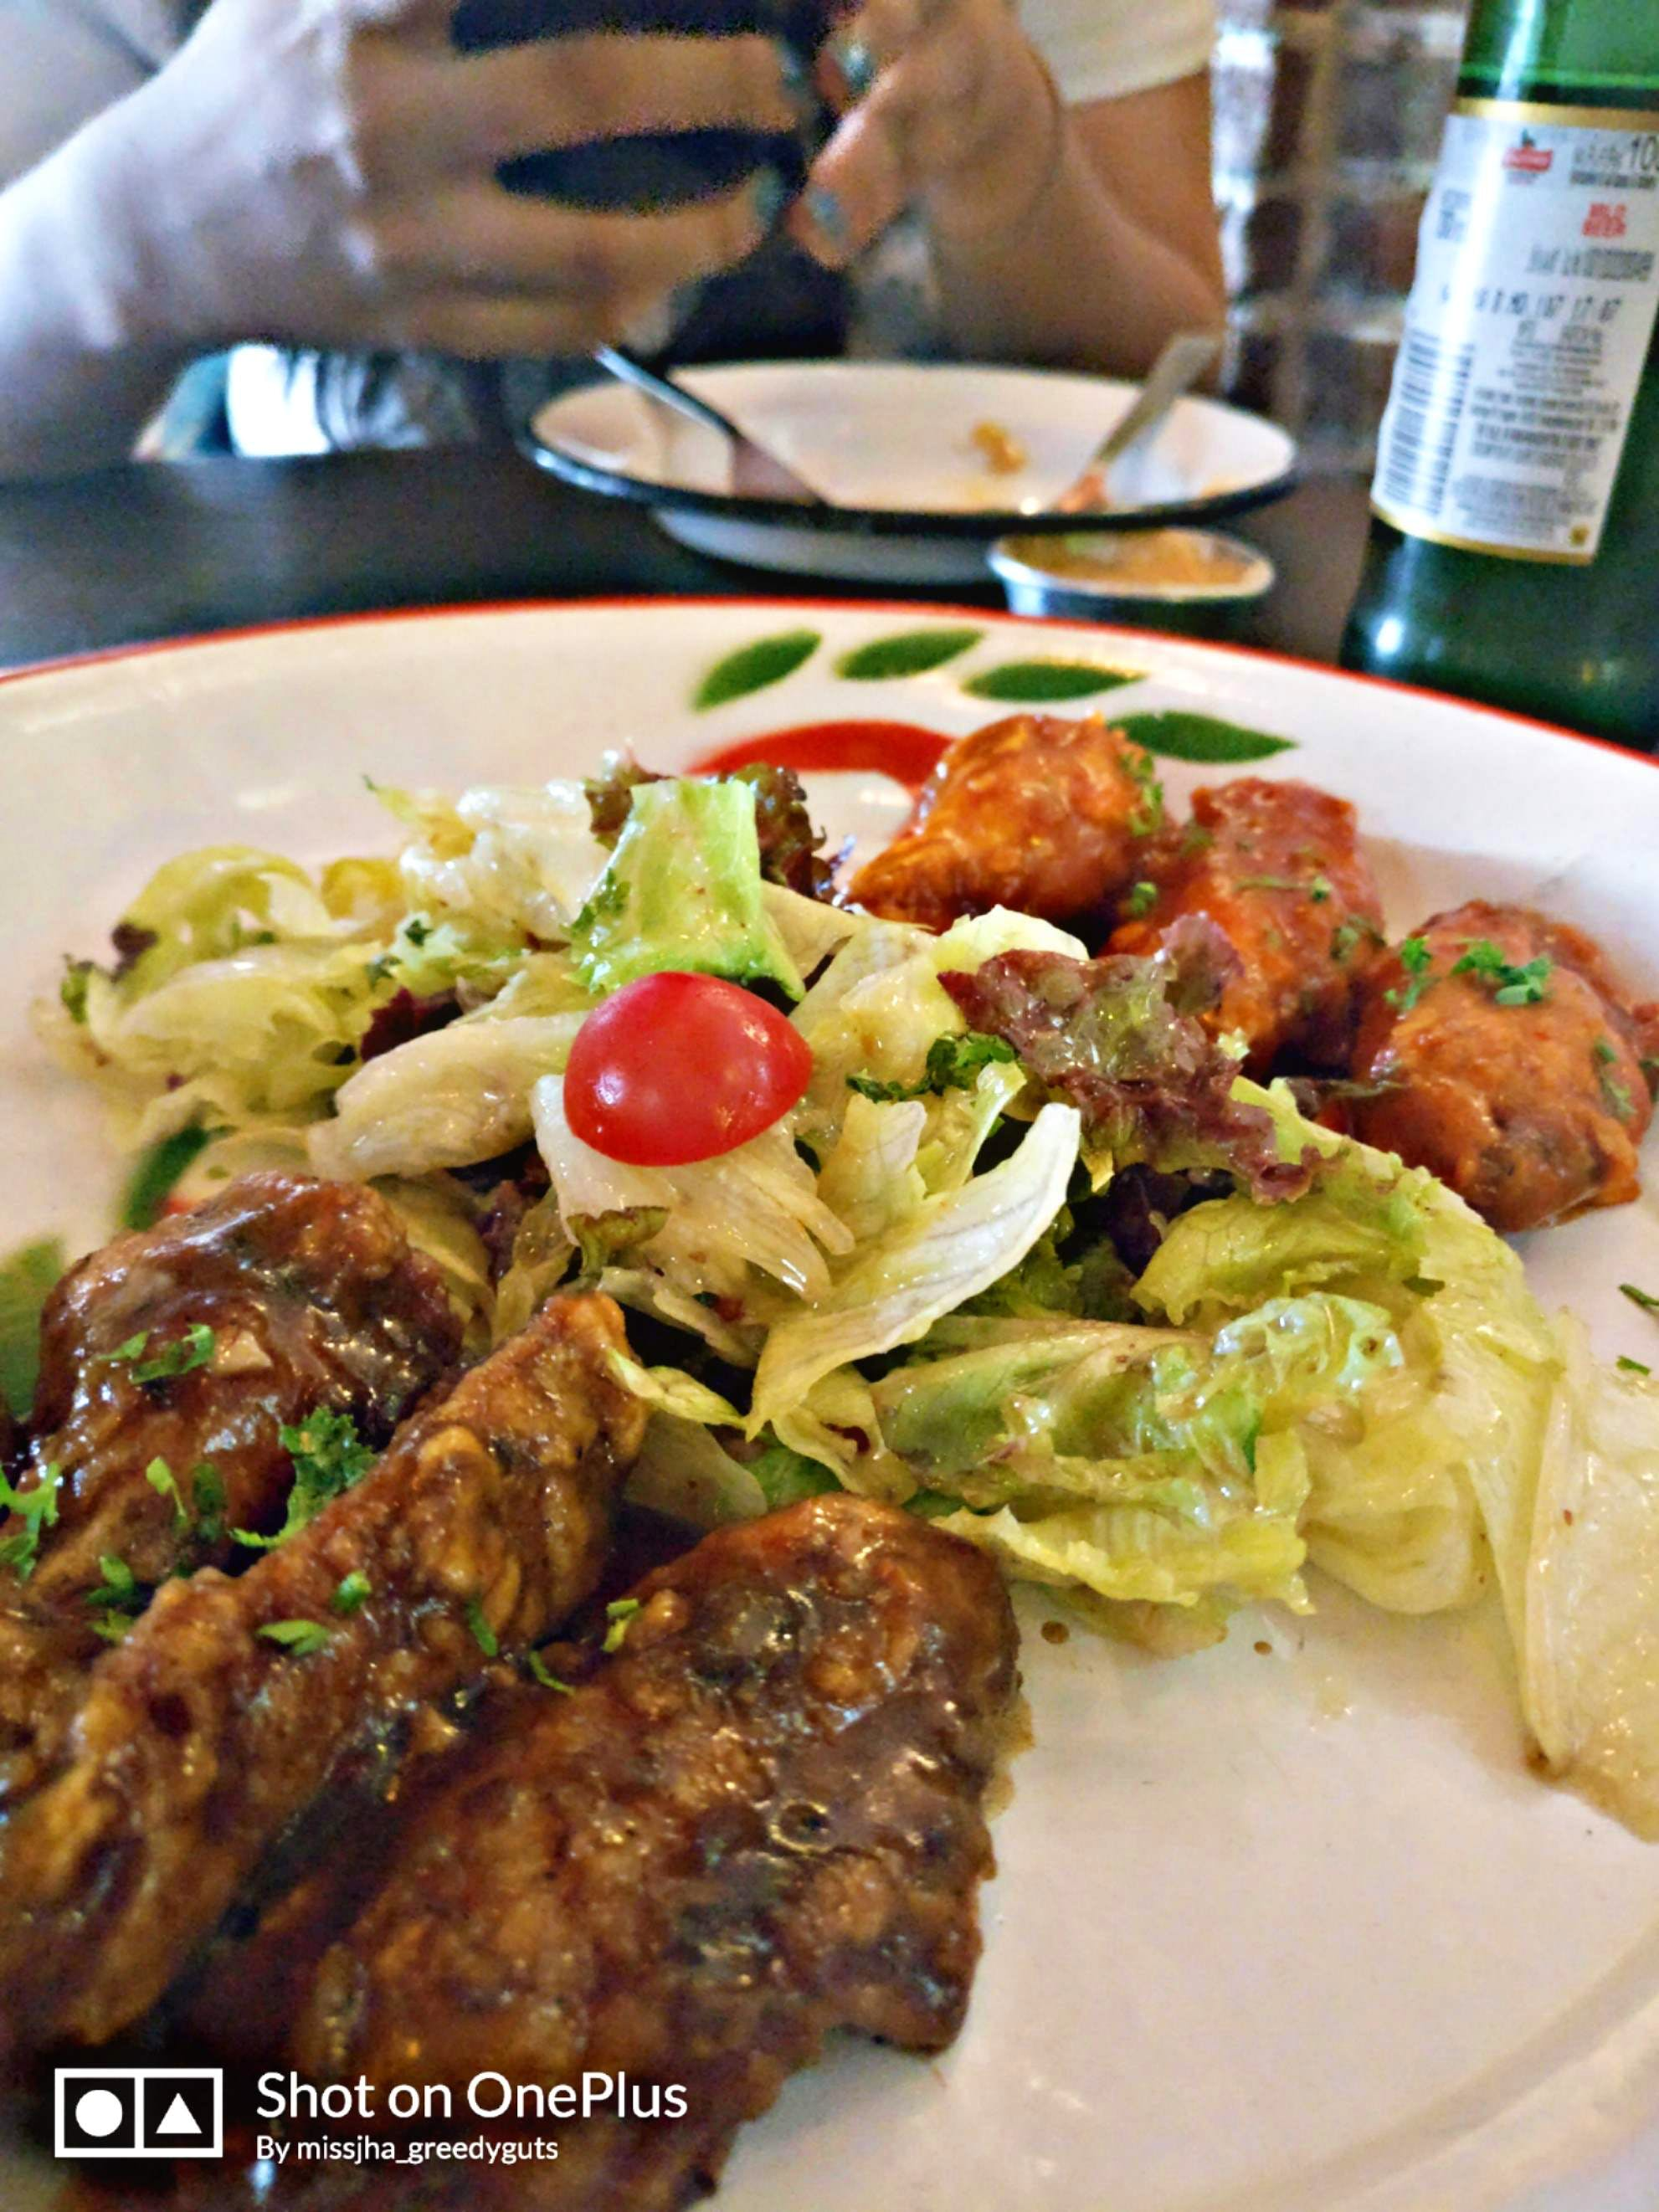 Dish,Food,Cuisine,Ingredient,Meat,Produce,Recipe,Salad,Mixed grill,Fried food